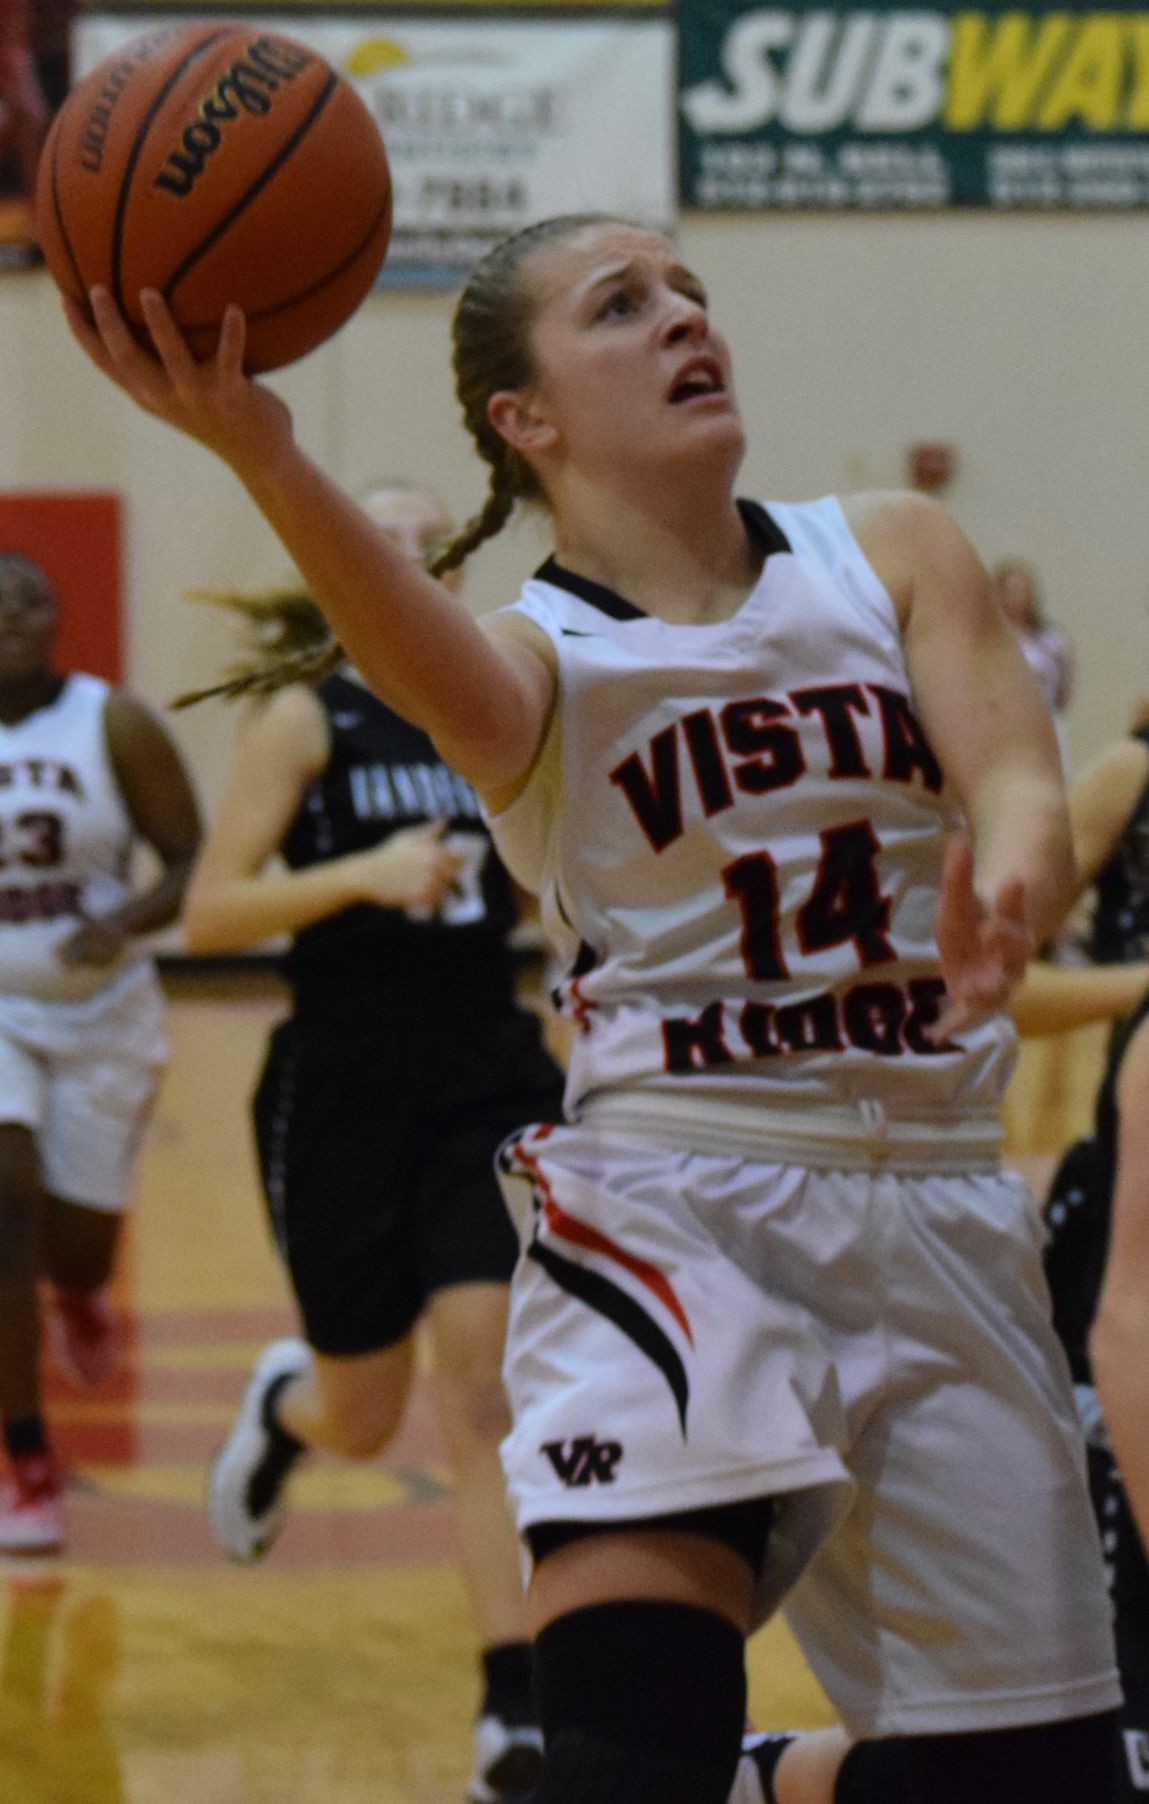 Nikki Cardano-Hillary scored 35 points in her final game at the Vista Ridge gymnasium and the Lady Rangers beat Vandegrfit 61-53 Friday night.